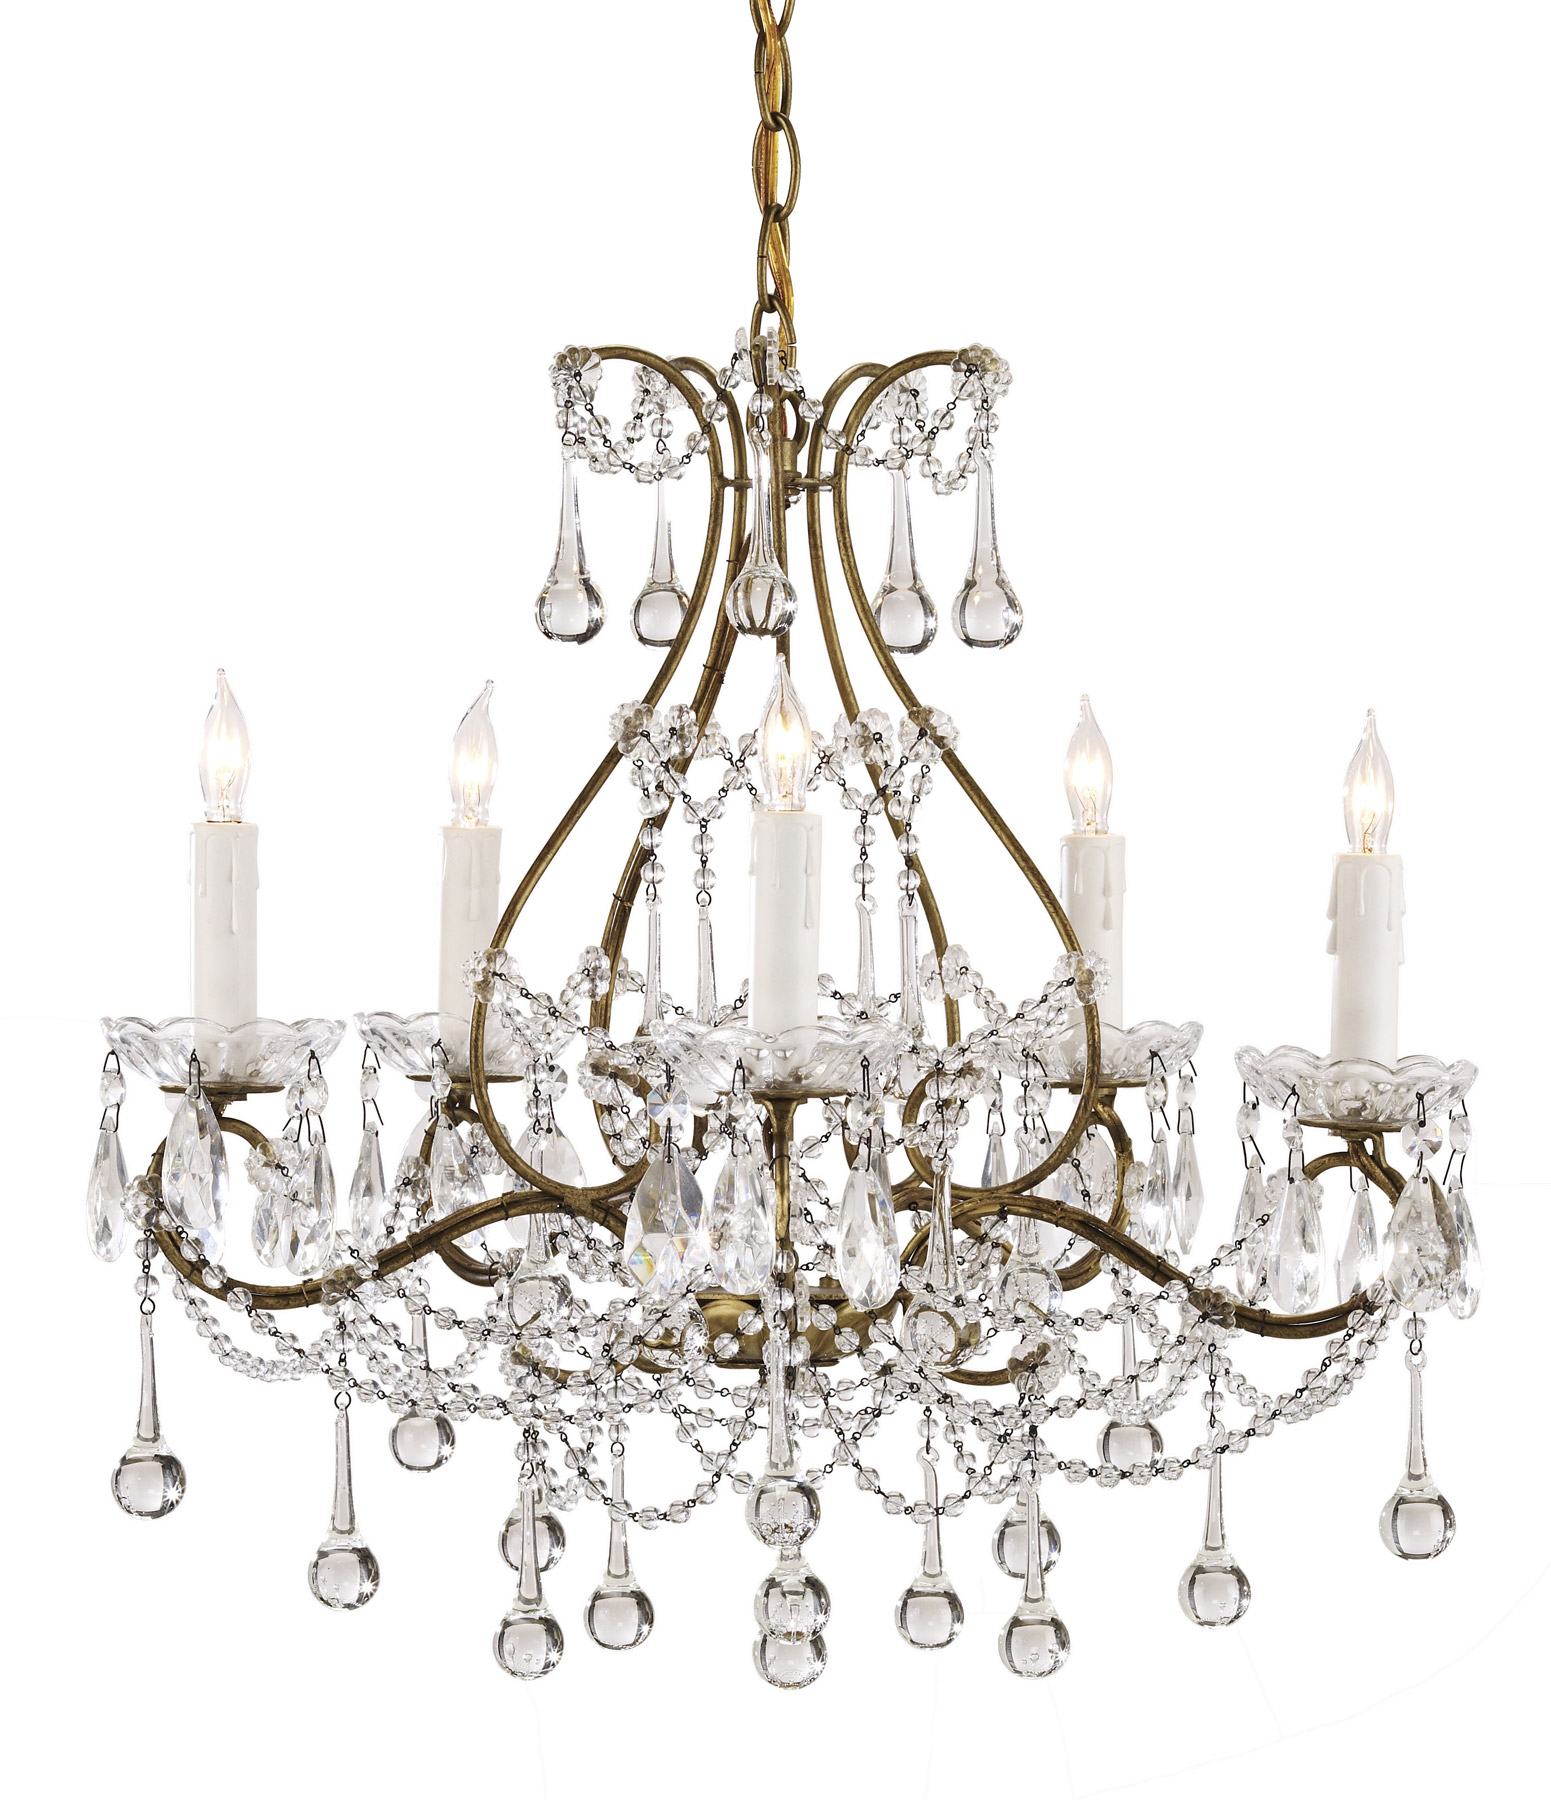 Currey and company 9008 crystal paramour five light mini chandelier - Ceiling lights and chandeliers ...